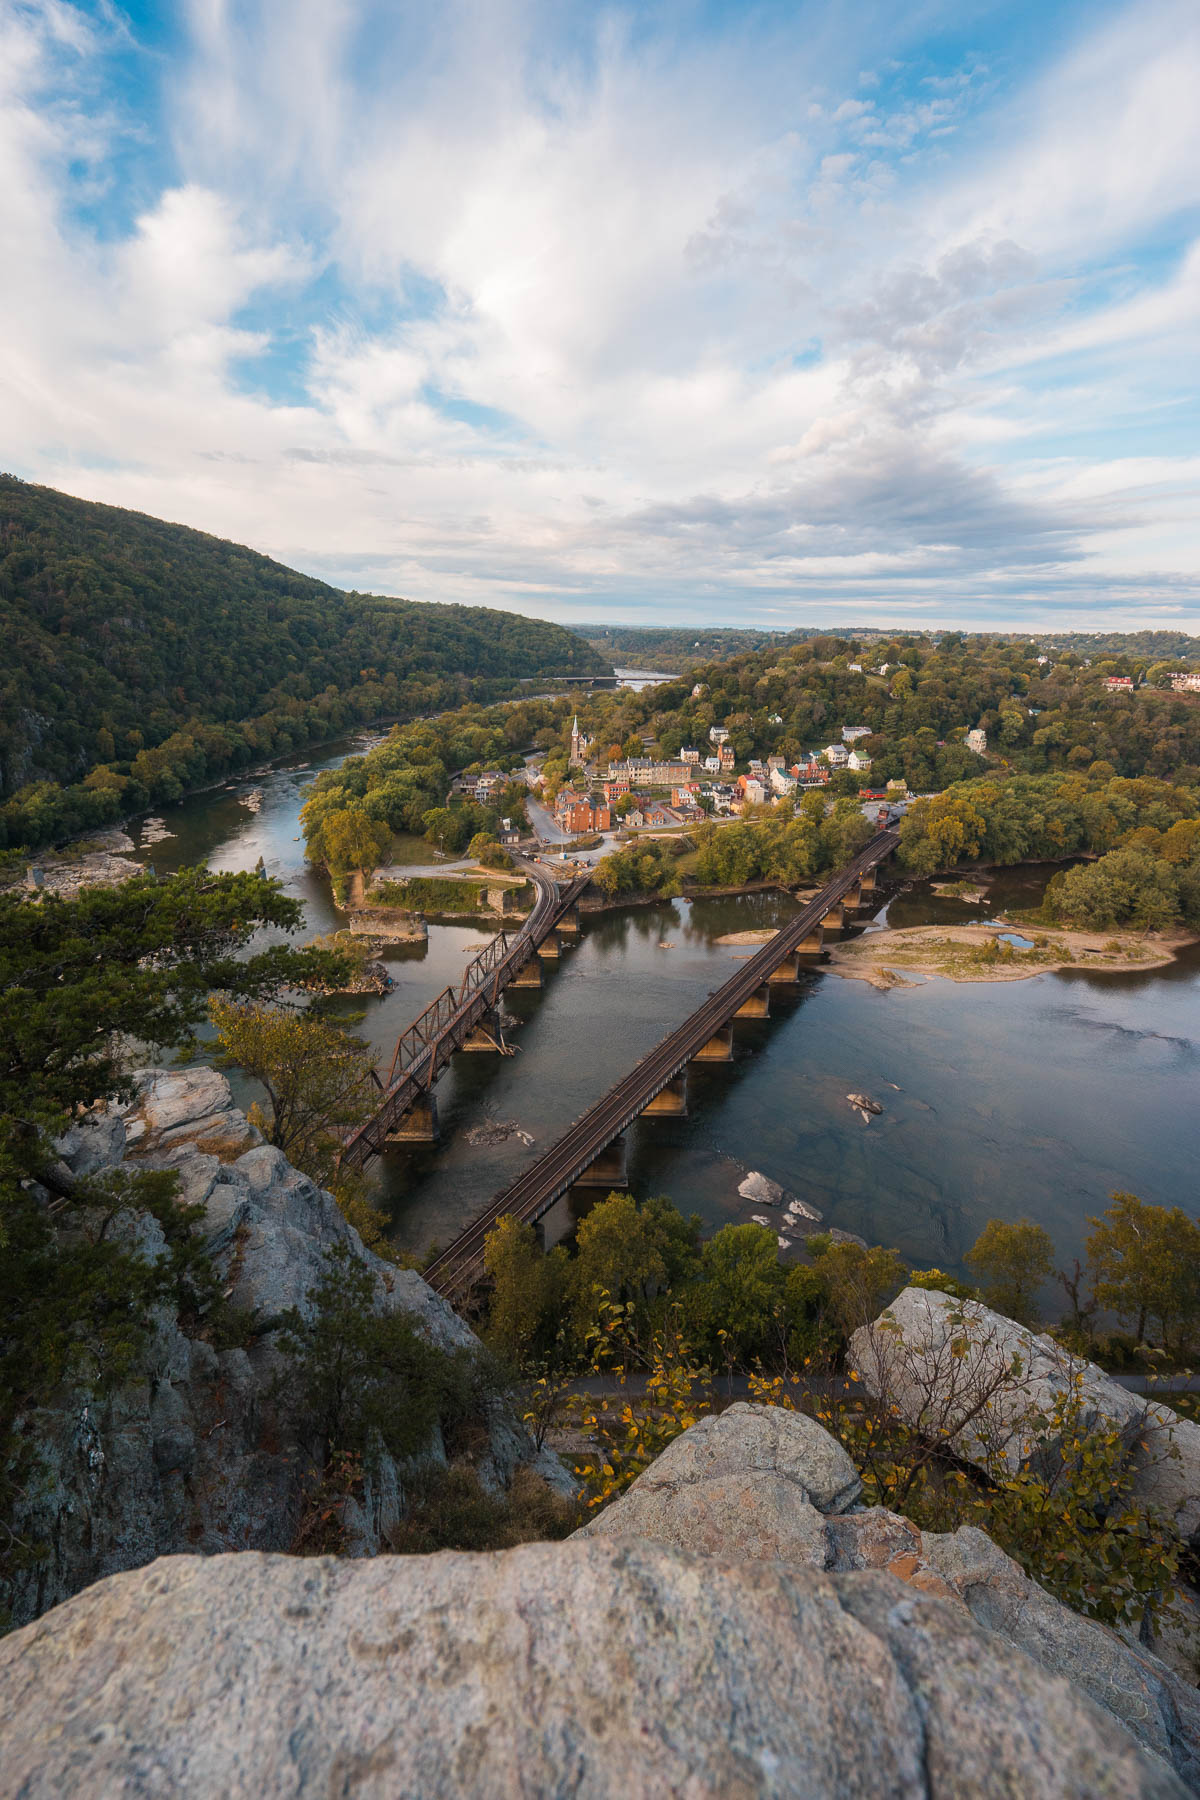 Harpers ferry, west virginia, wv, hike, maryland heights, overlook, arpers Ferry National Historical Park, John Brown, Shenandoah river, hiking